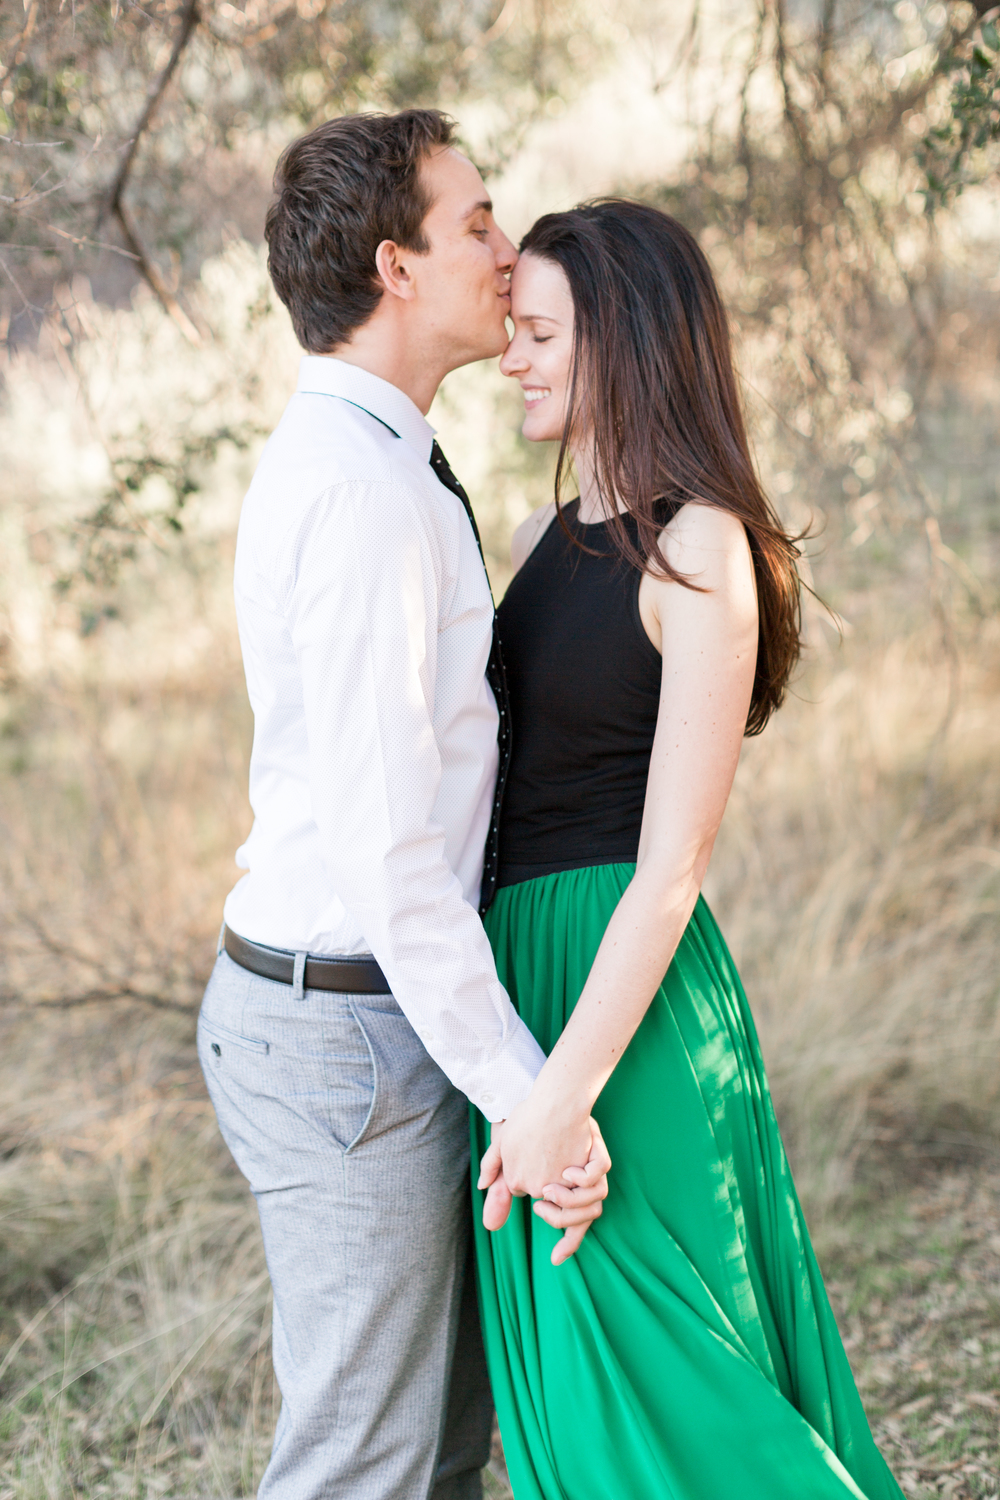 CourtneyPaigePhotography_Abler_Engagement-30.jpg